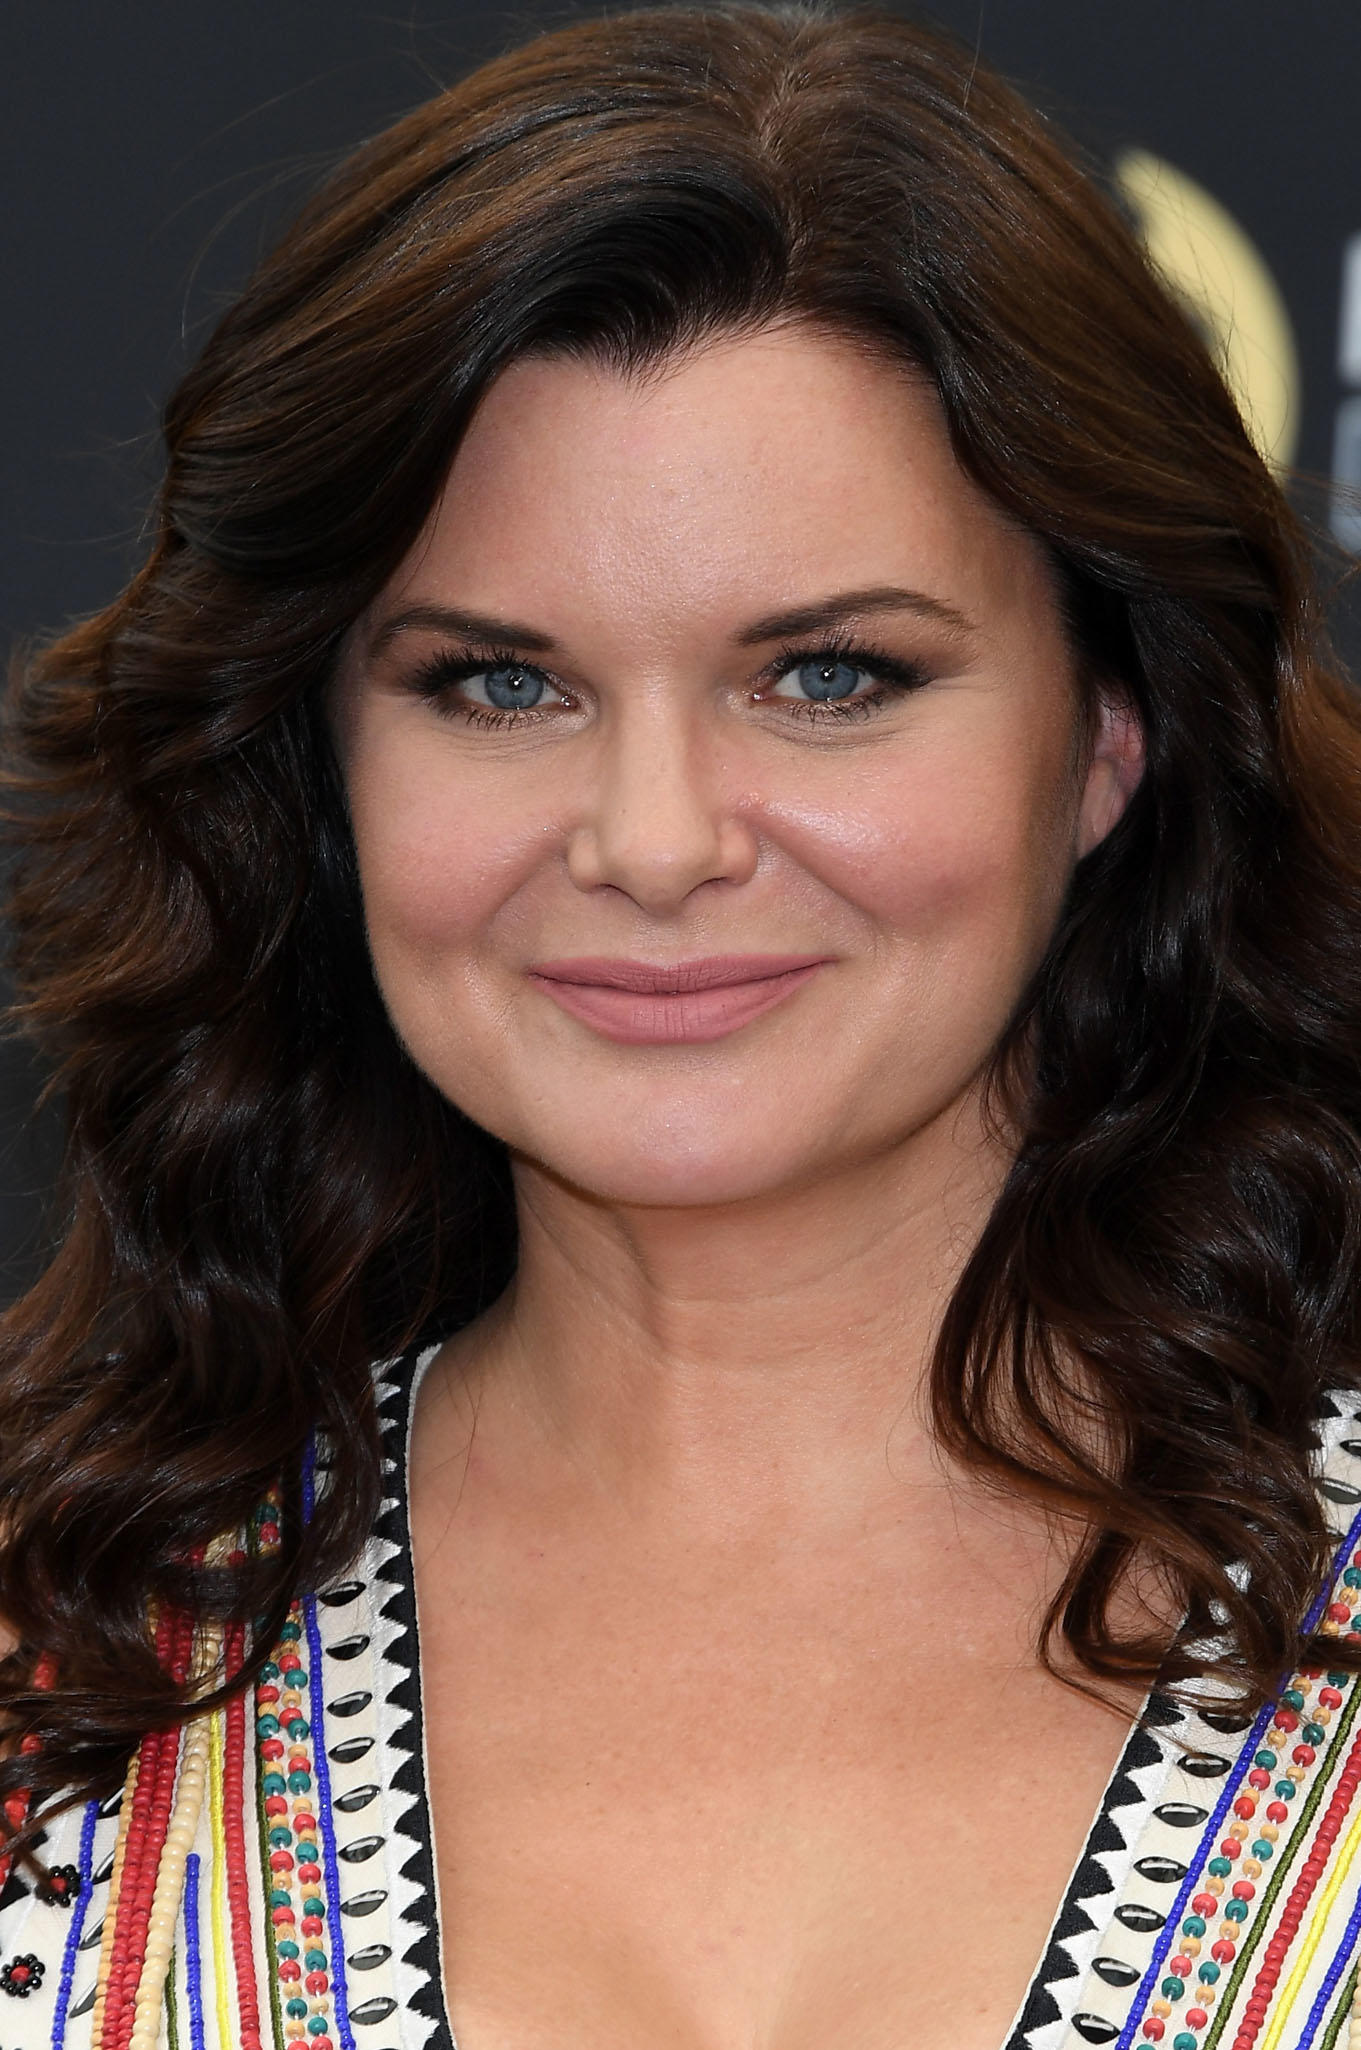 heather tom young and the restlessheather tom gabel, heather tom, heather tom young, heather tom instagram, heather tom husband, heather tom son, heather tom age, heather tom net worth, heather tom siblings, heather tom feet, heather tom brother, heather tom as victoria newman, heather tom pregnant, heather tom young and the restless, heather tom sister, heather tom wedding, heather tom lucifer, heather tom twitter, heather tom imdb, heather tom heart surgery